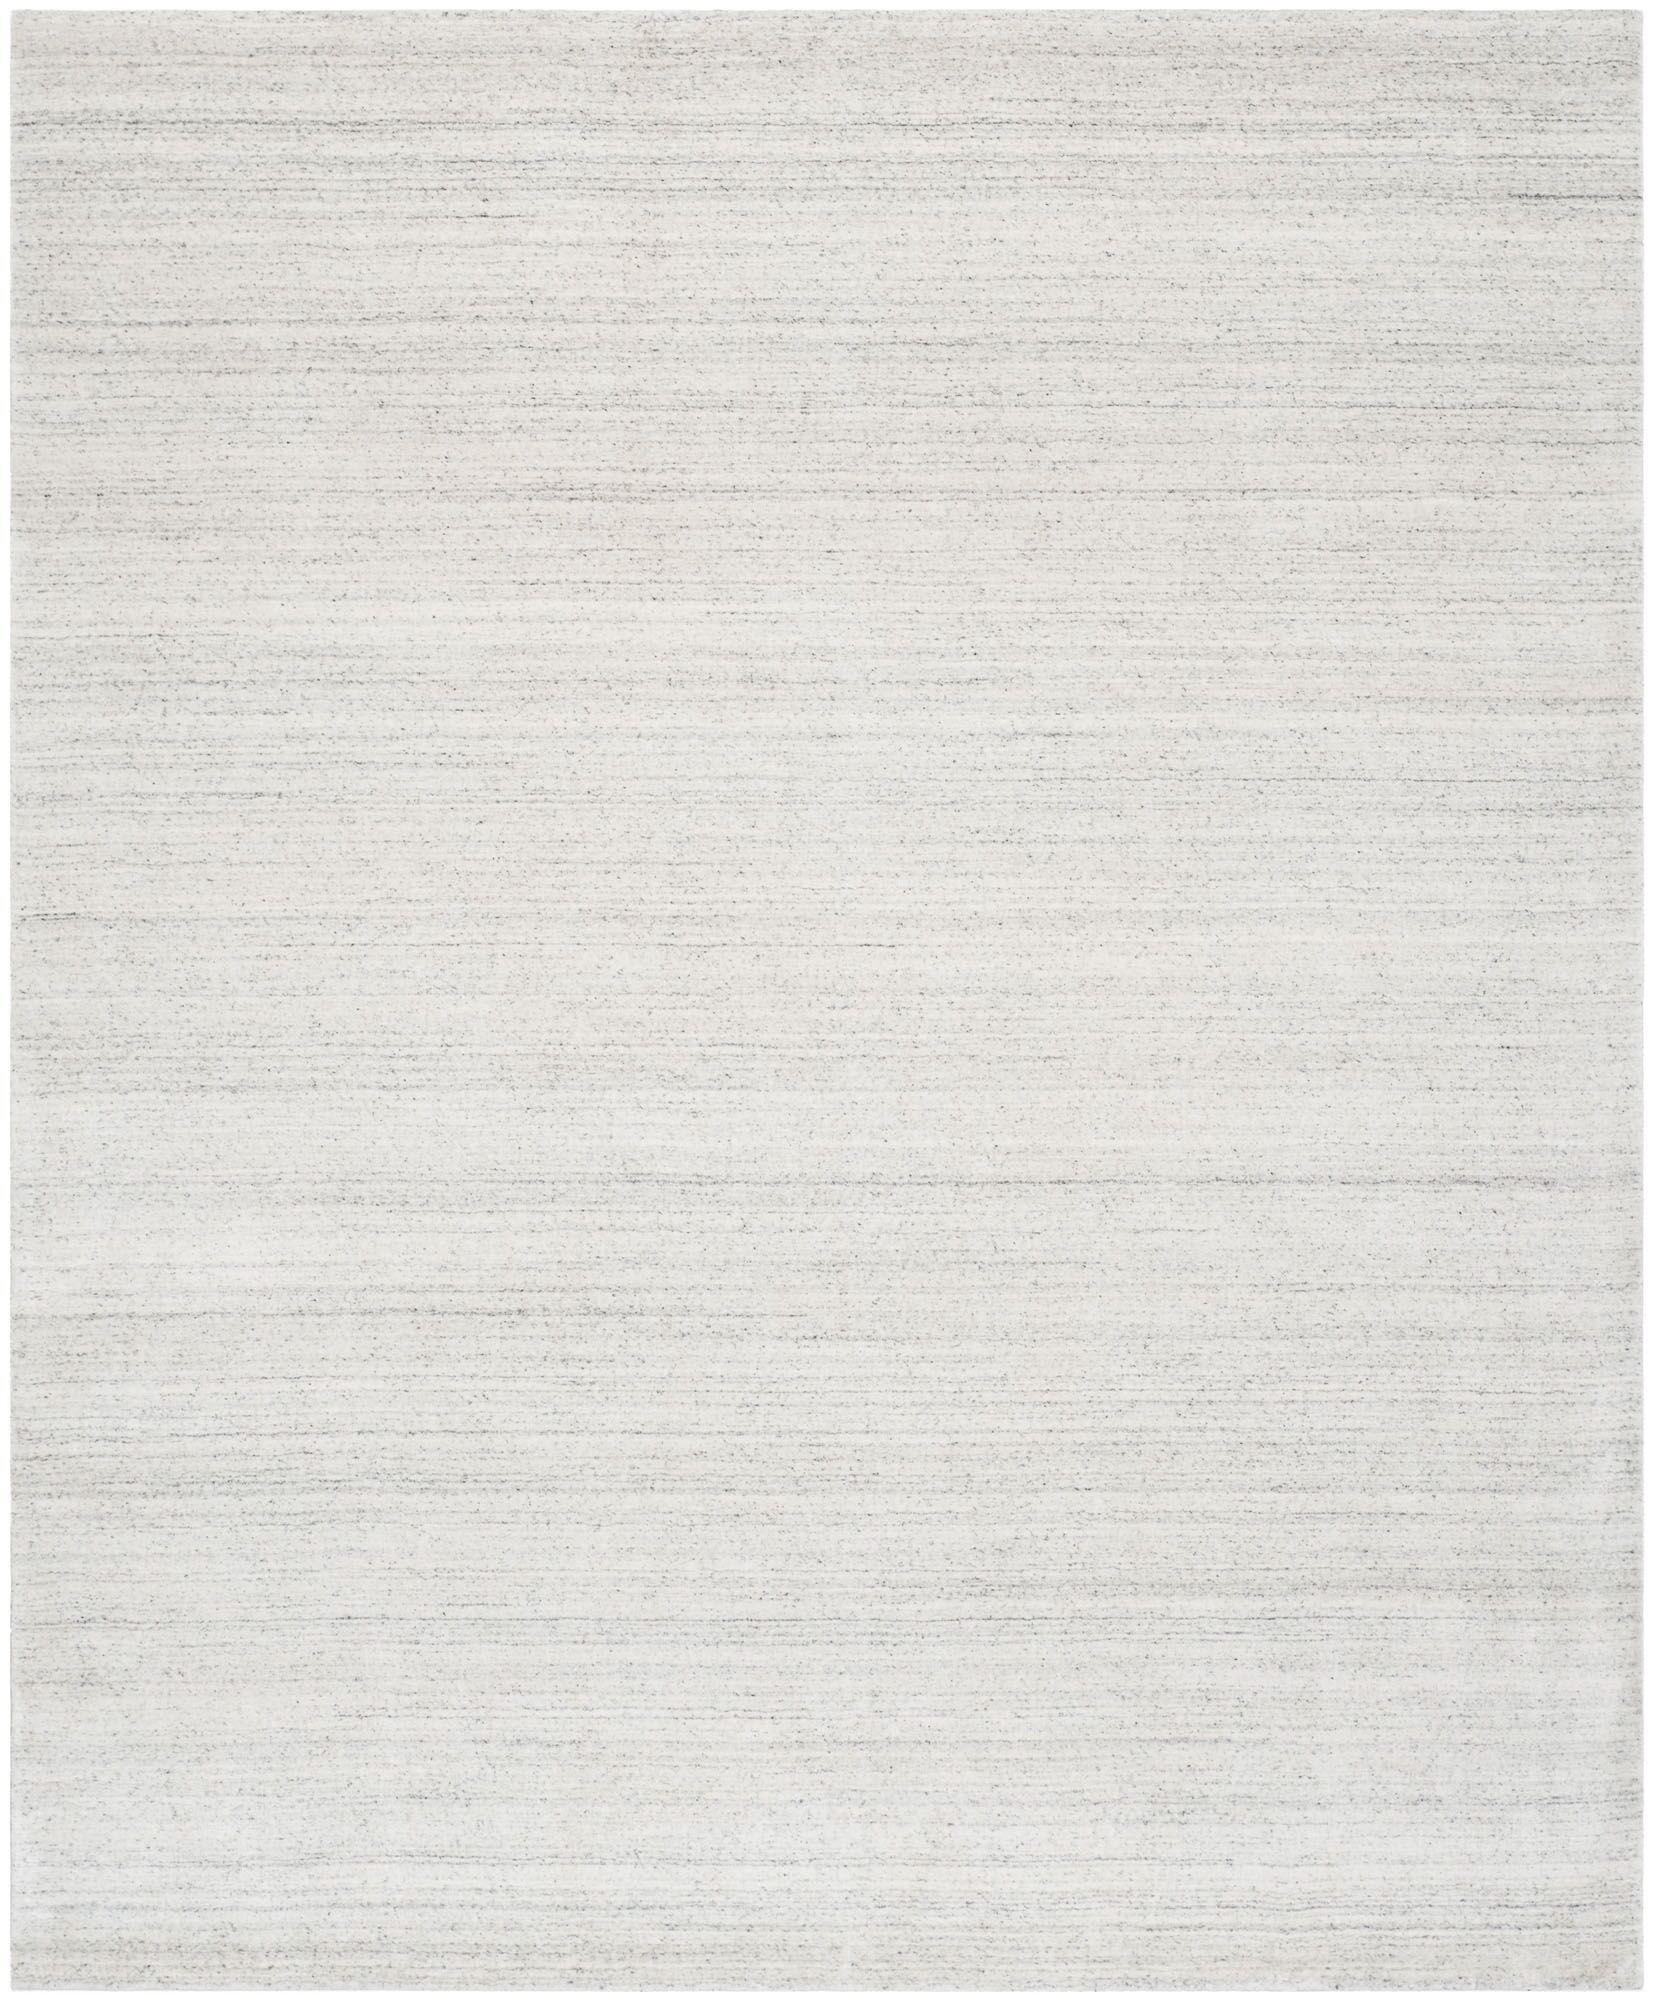 Wald Hand-Woven Silver Area Rug Rug Size: Rectangle 8' x 10'